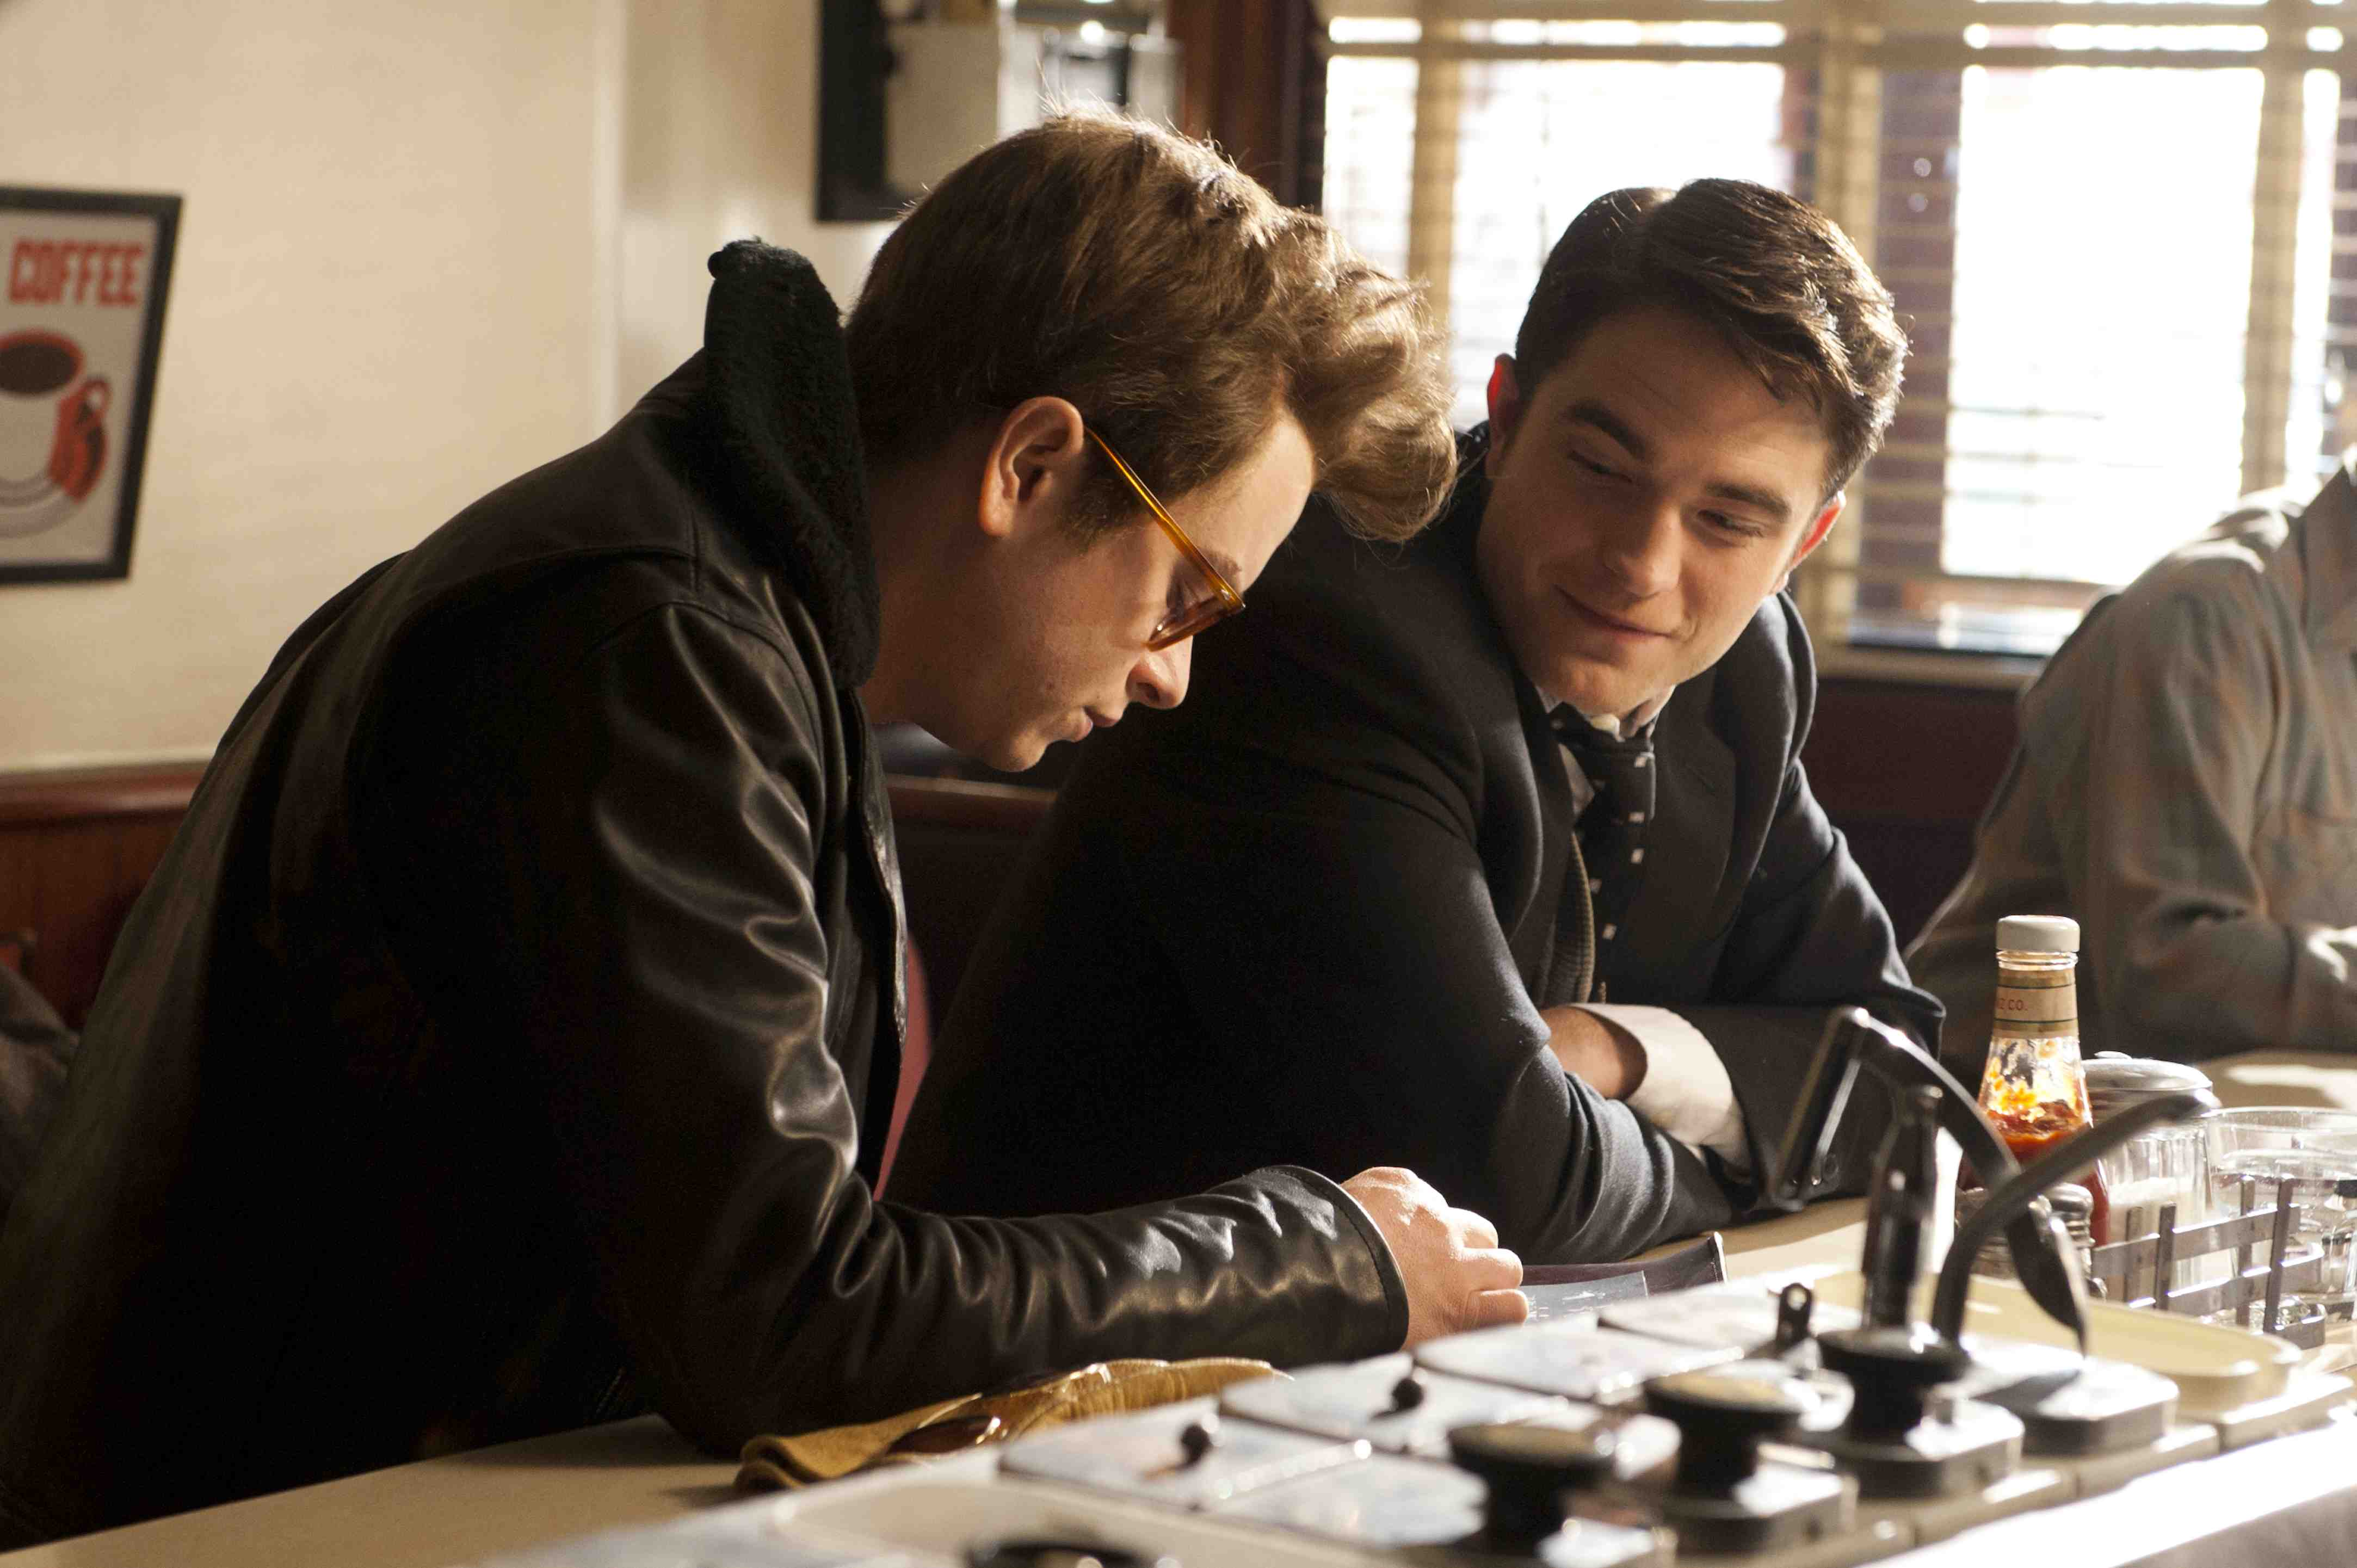 life-dane-dehaan-et-robert-pattinson-944768.jpg